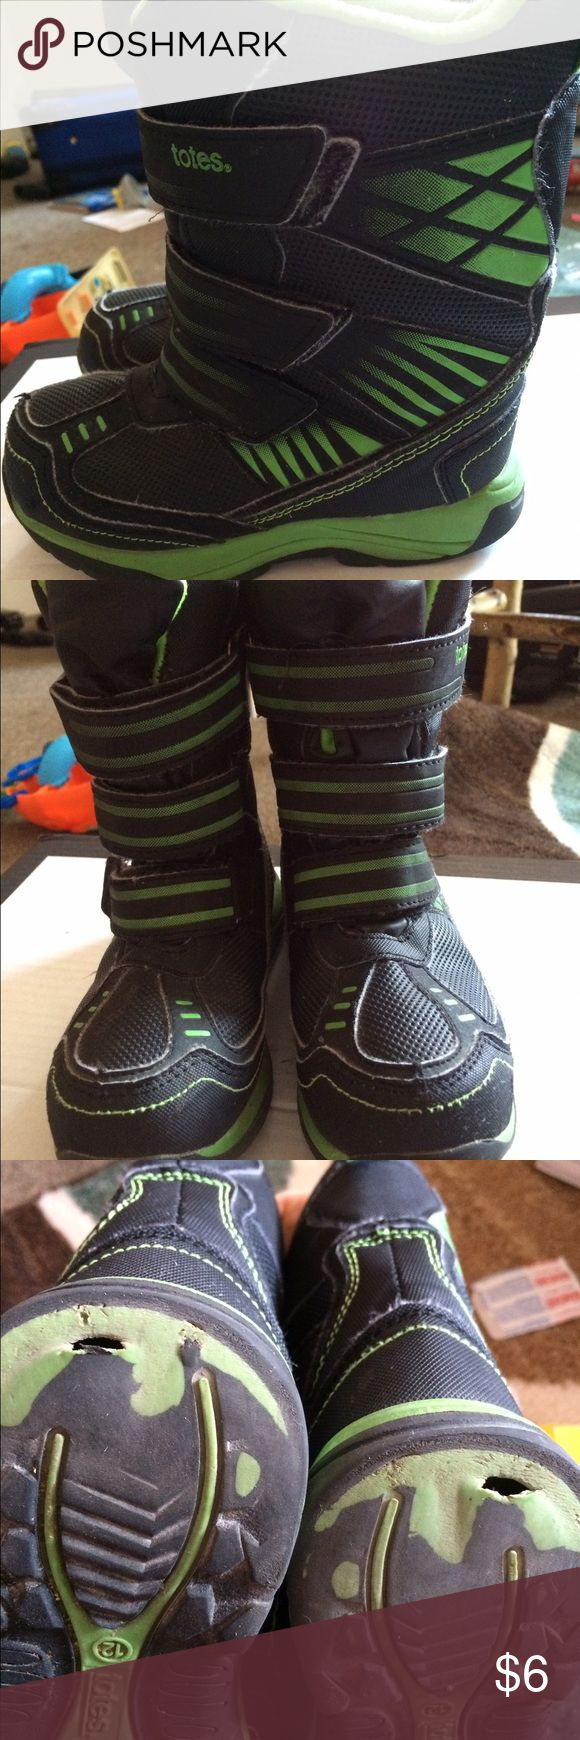 Toddler winter boots. Sturdy winter boots for active kid- lots of life left in them- superficial holes in the sole do not allow water to soak kids socks, do not hinder performance.  Some fuzzies in the Velcro. Shoes Boots